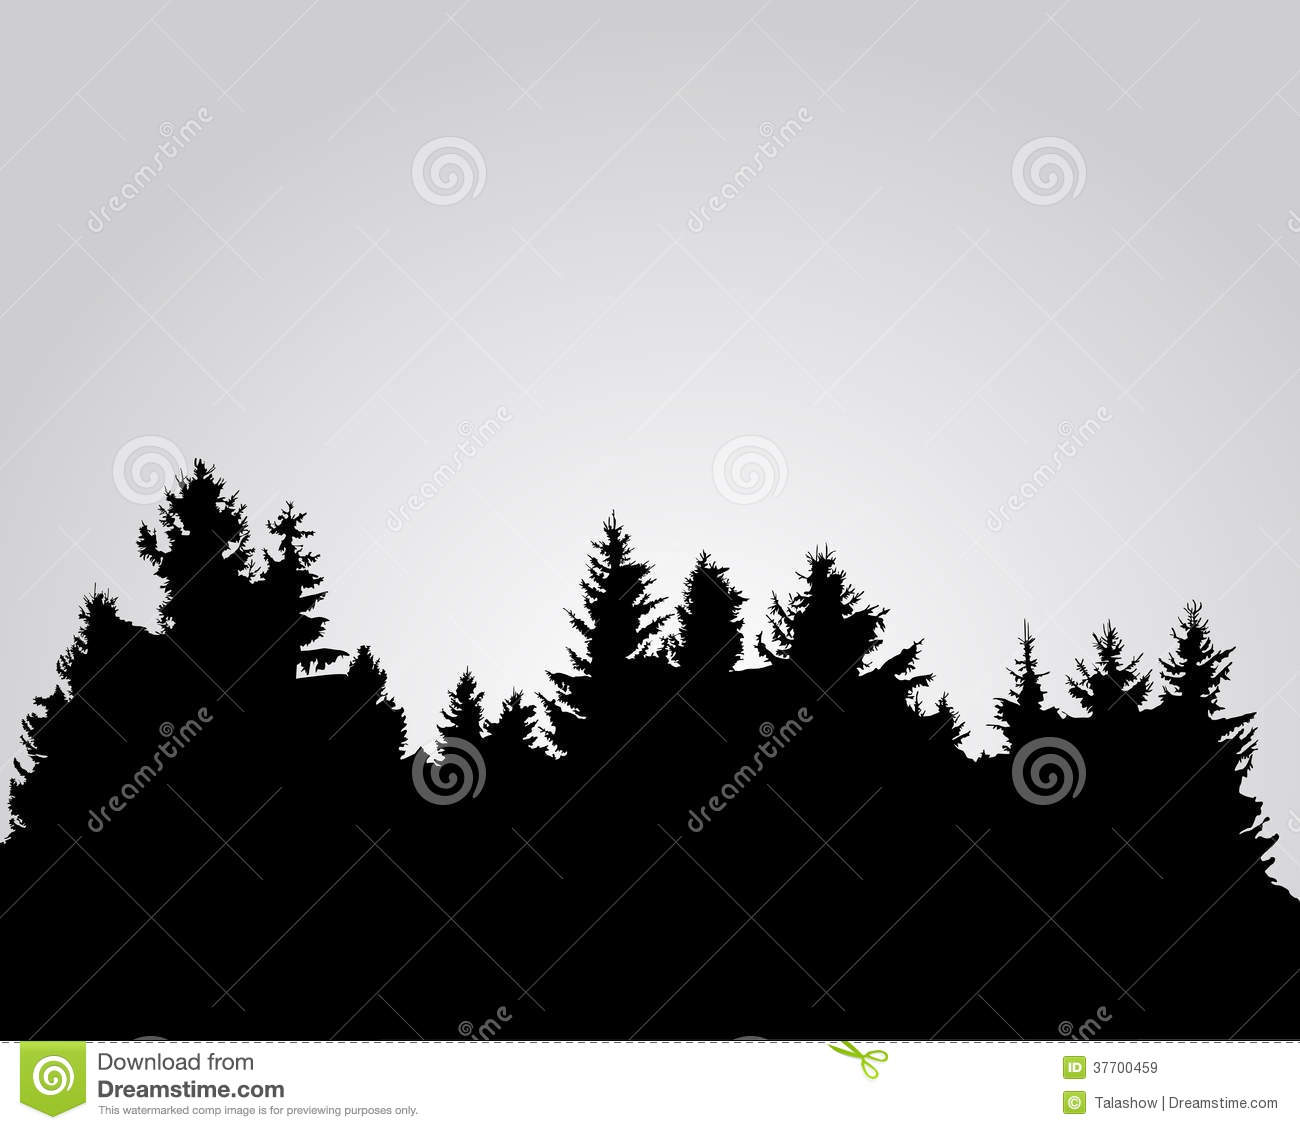 1920x1200 wallpaper forest silhouette - photo #46